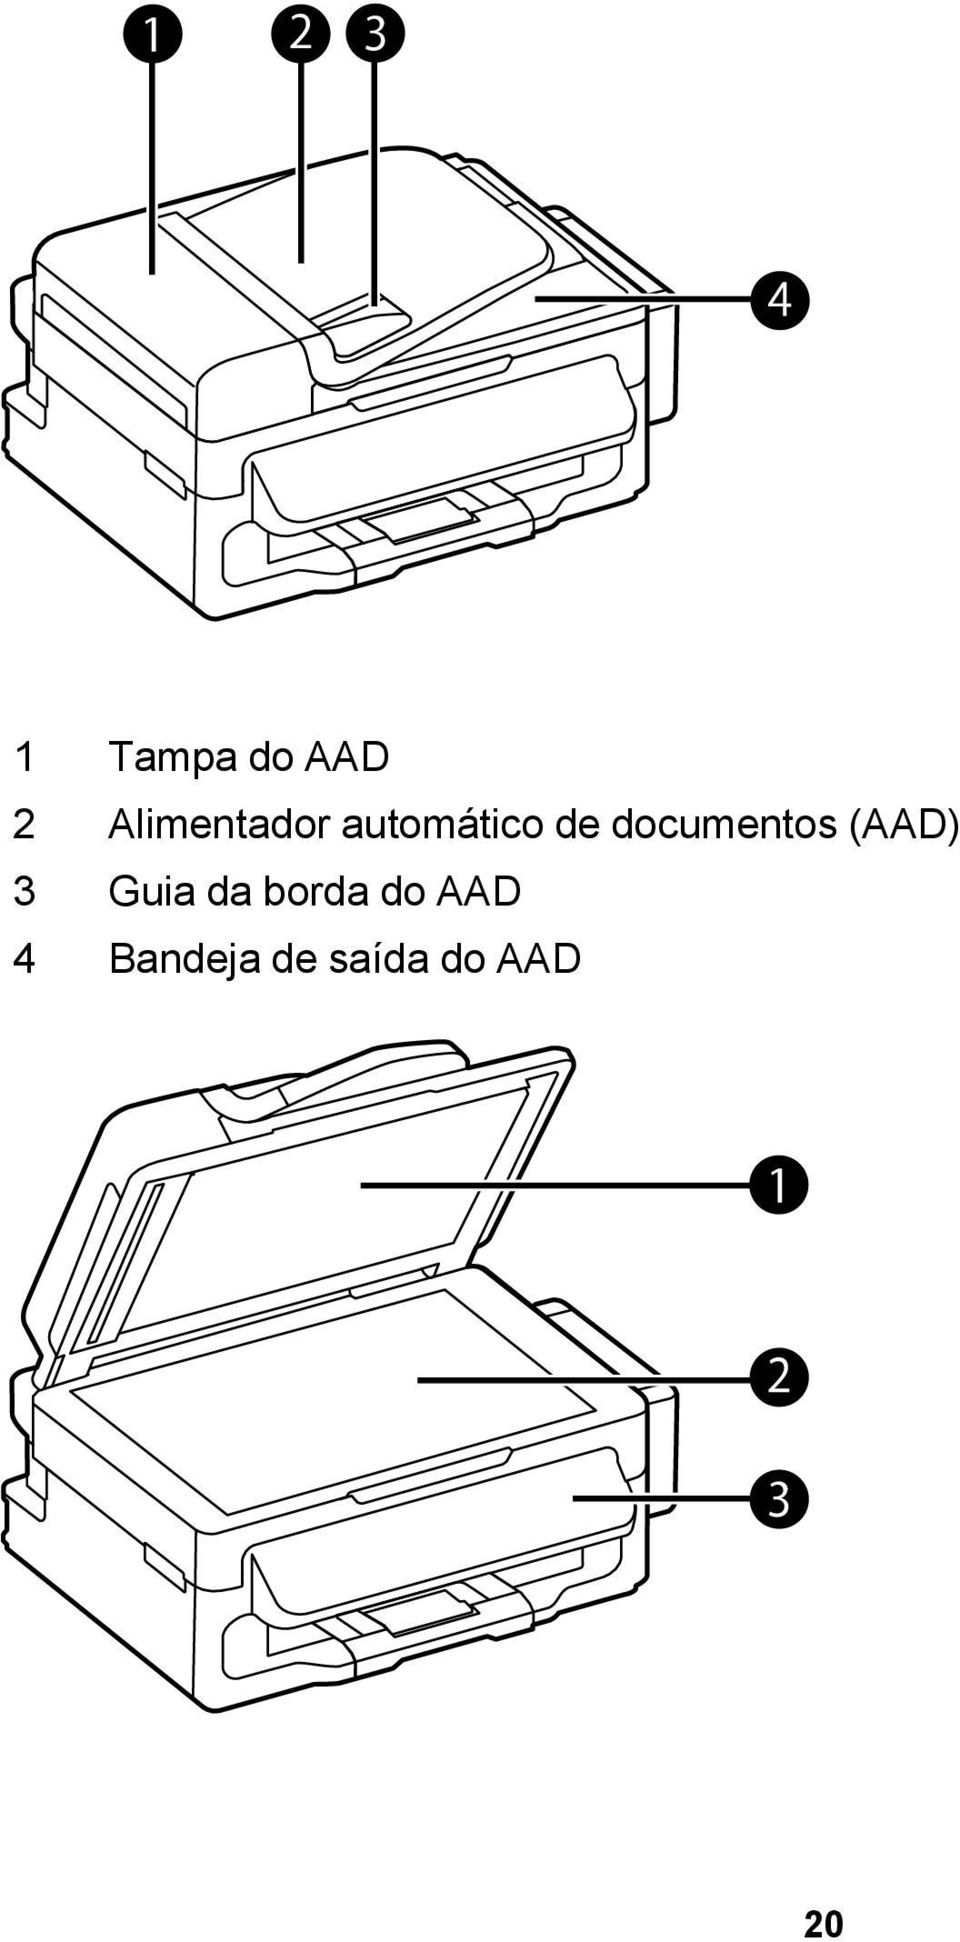 documentos (AAD) 3 Guia da